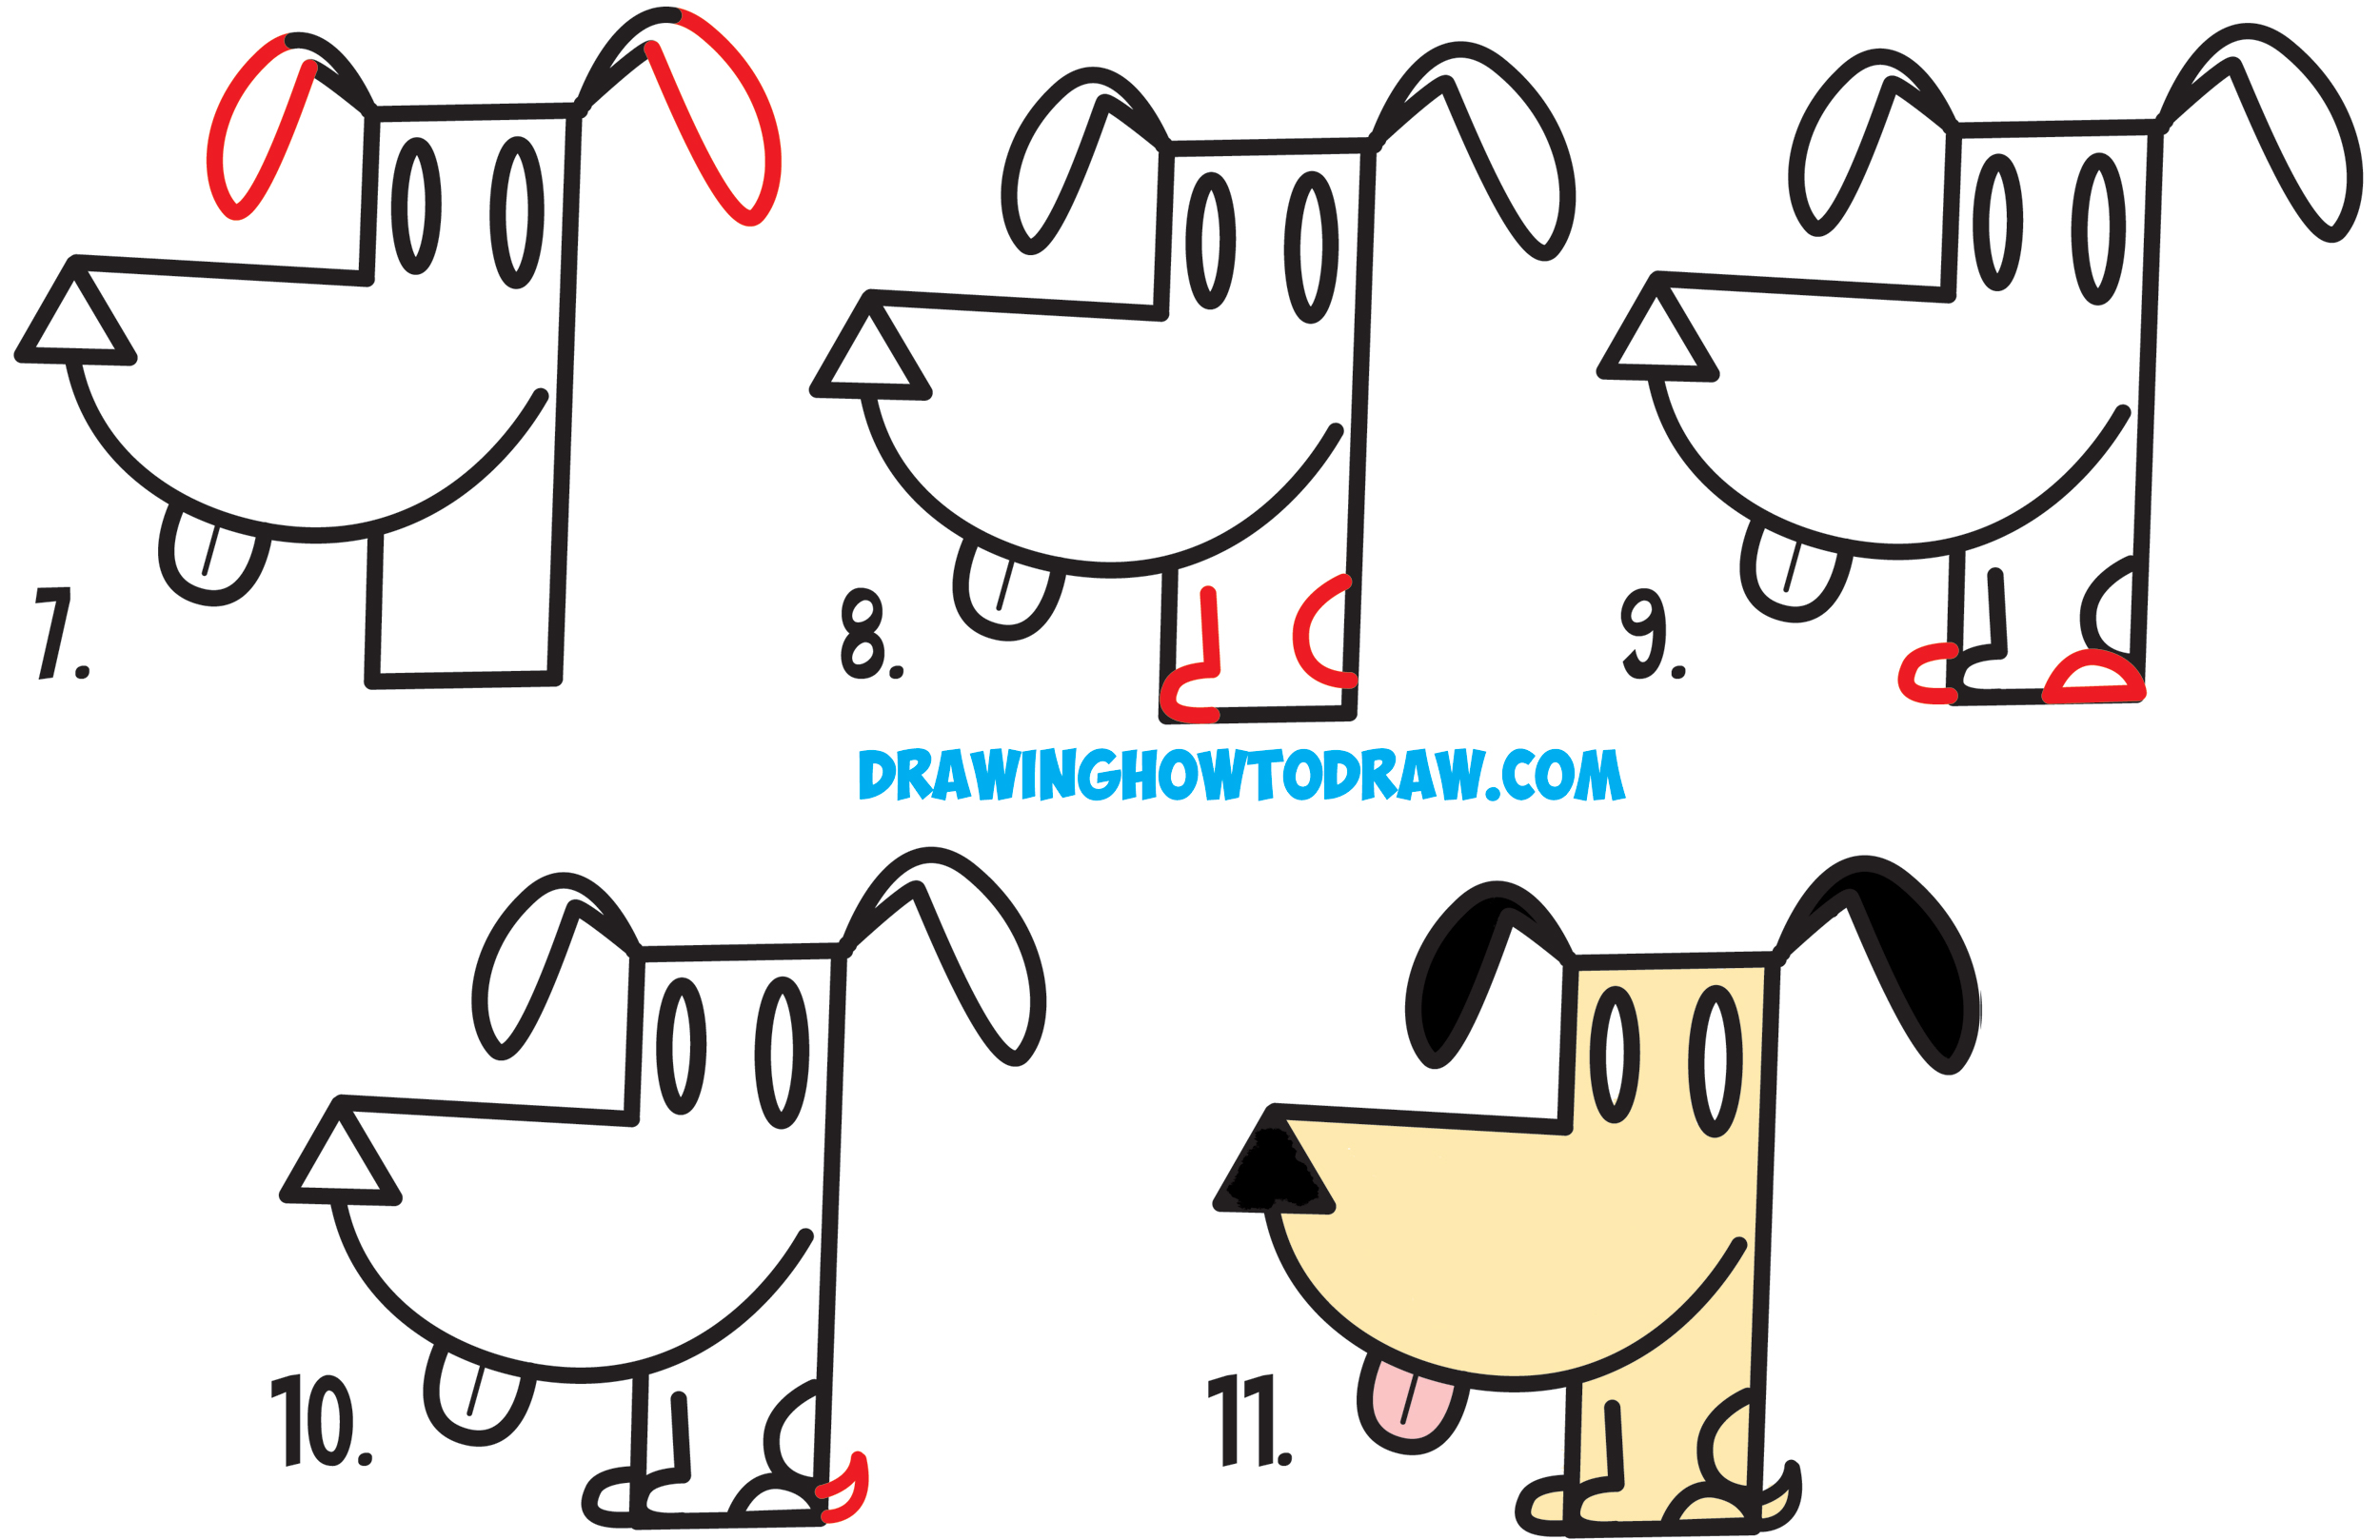 How to draw a cartoon dog from an arrow shape easy step by step learn how to draw a cartoon dog from an arrow shape simple steps drawing lesson biocorpaavc Choice Image